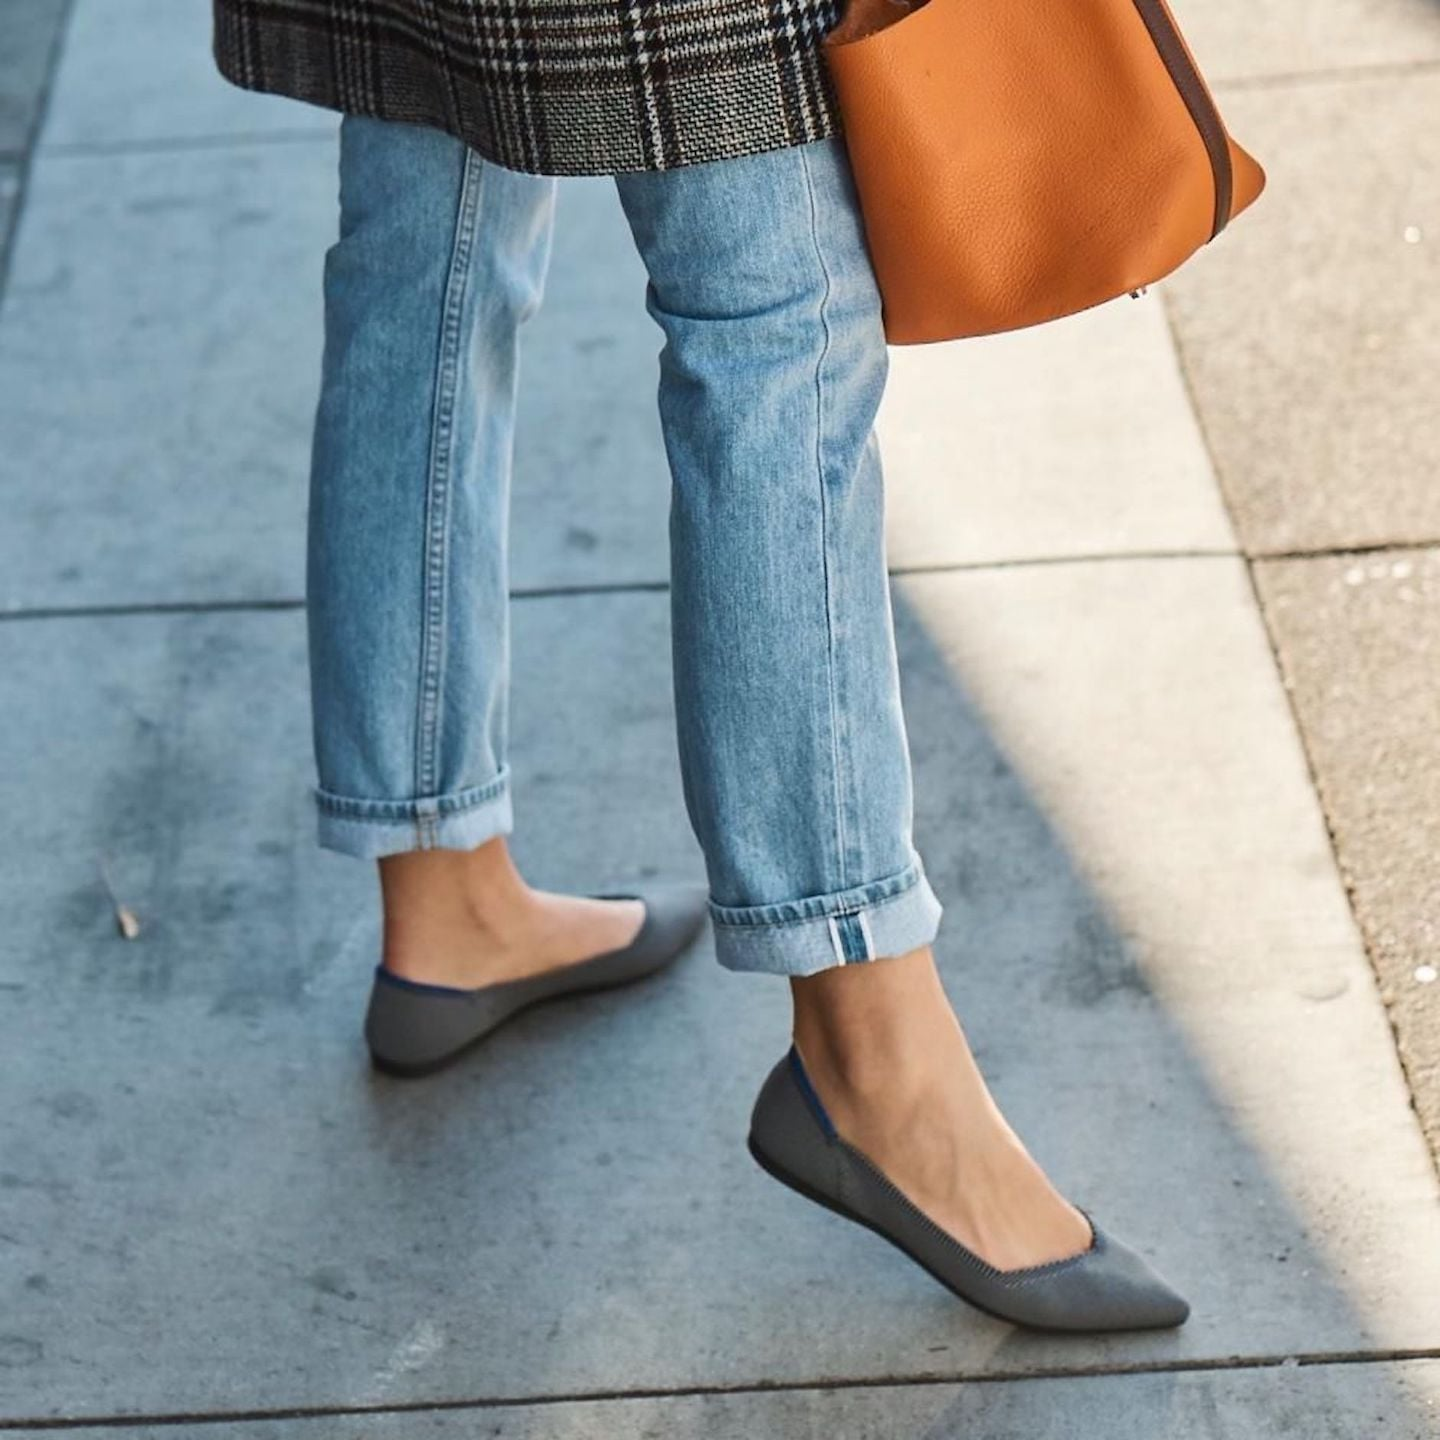 20 Of The Best And Most Comfortable Flats For Women 2020 Popsugar Fashion